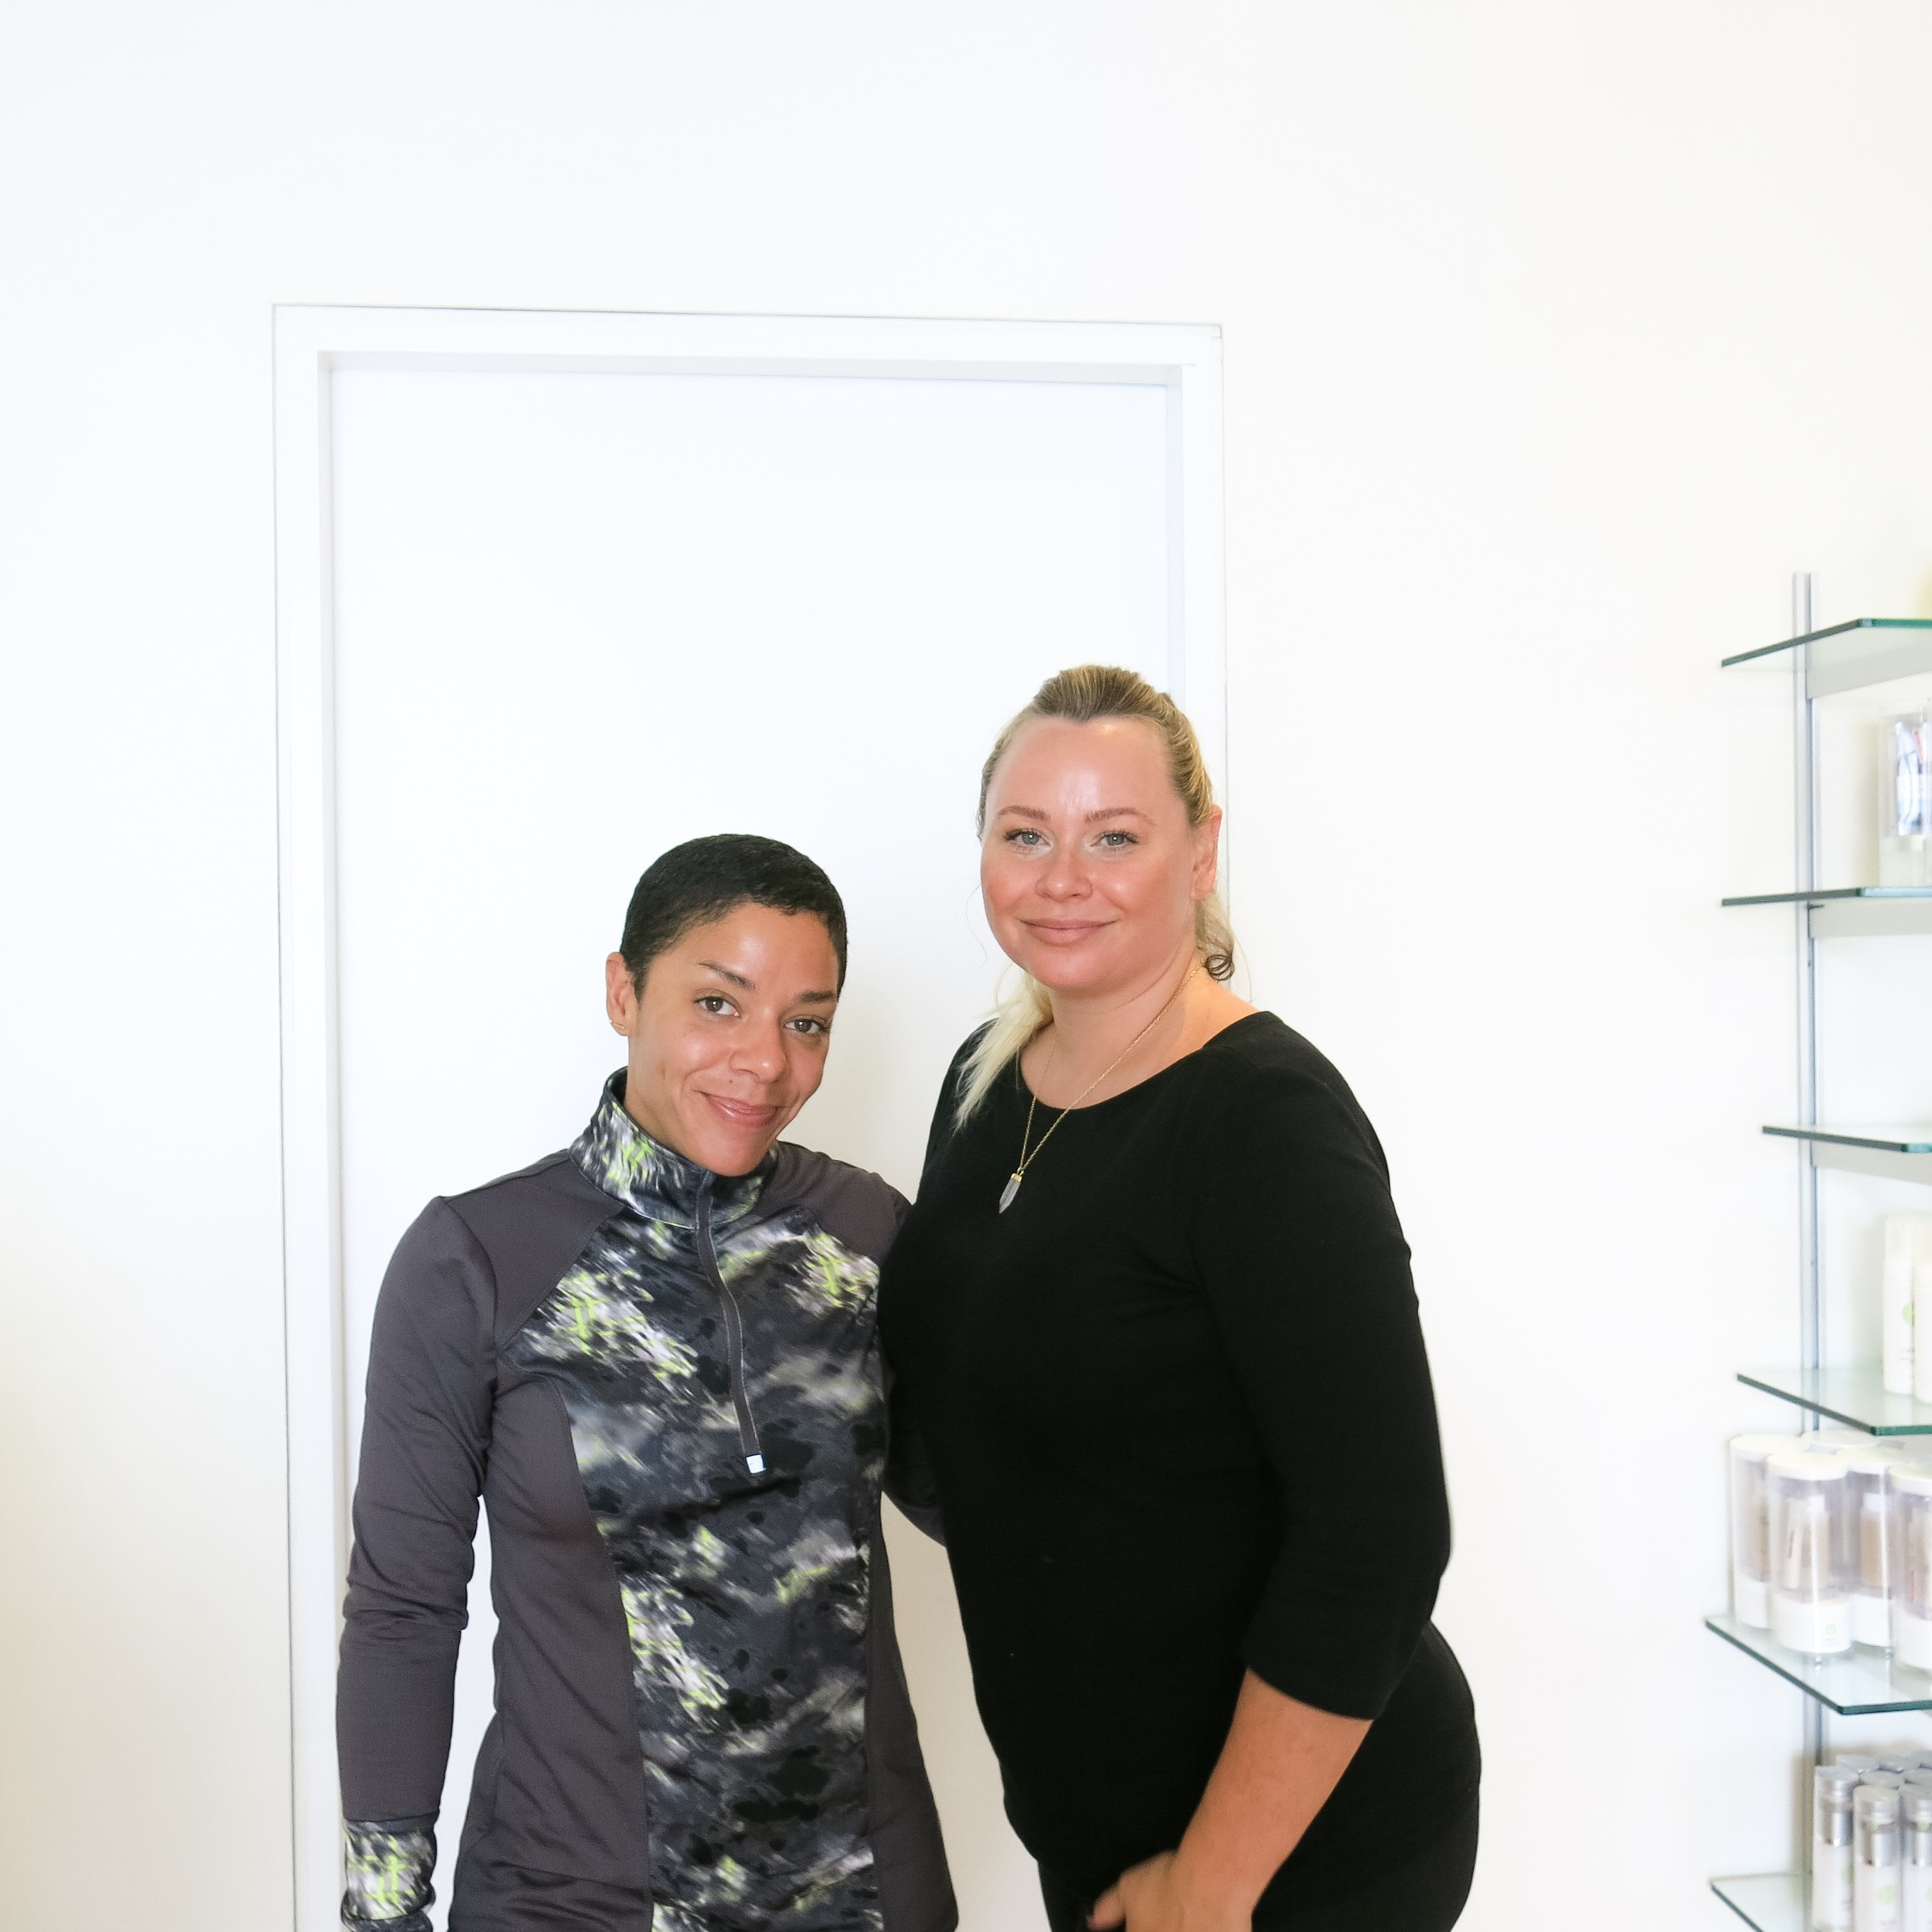 With the lovely esthetician Bonnie Brenkman